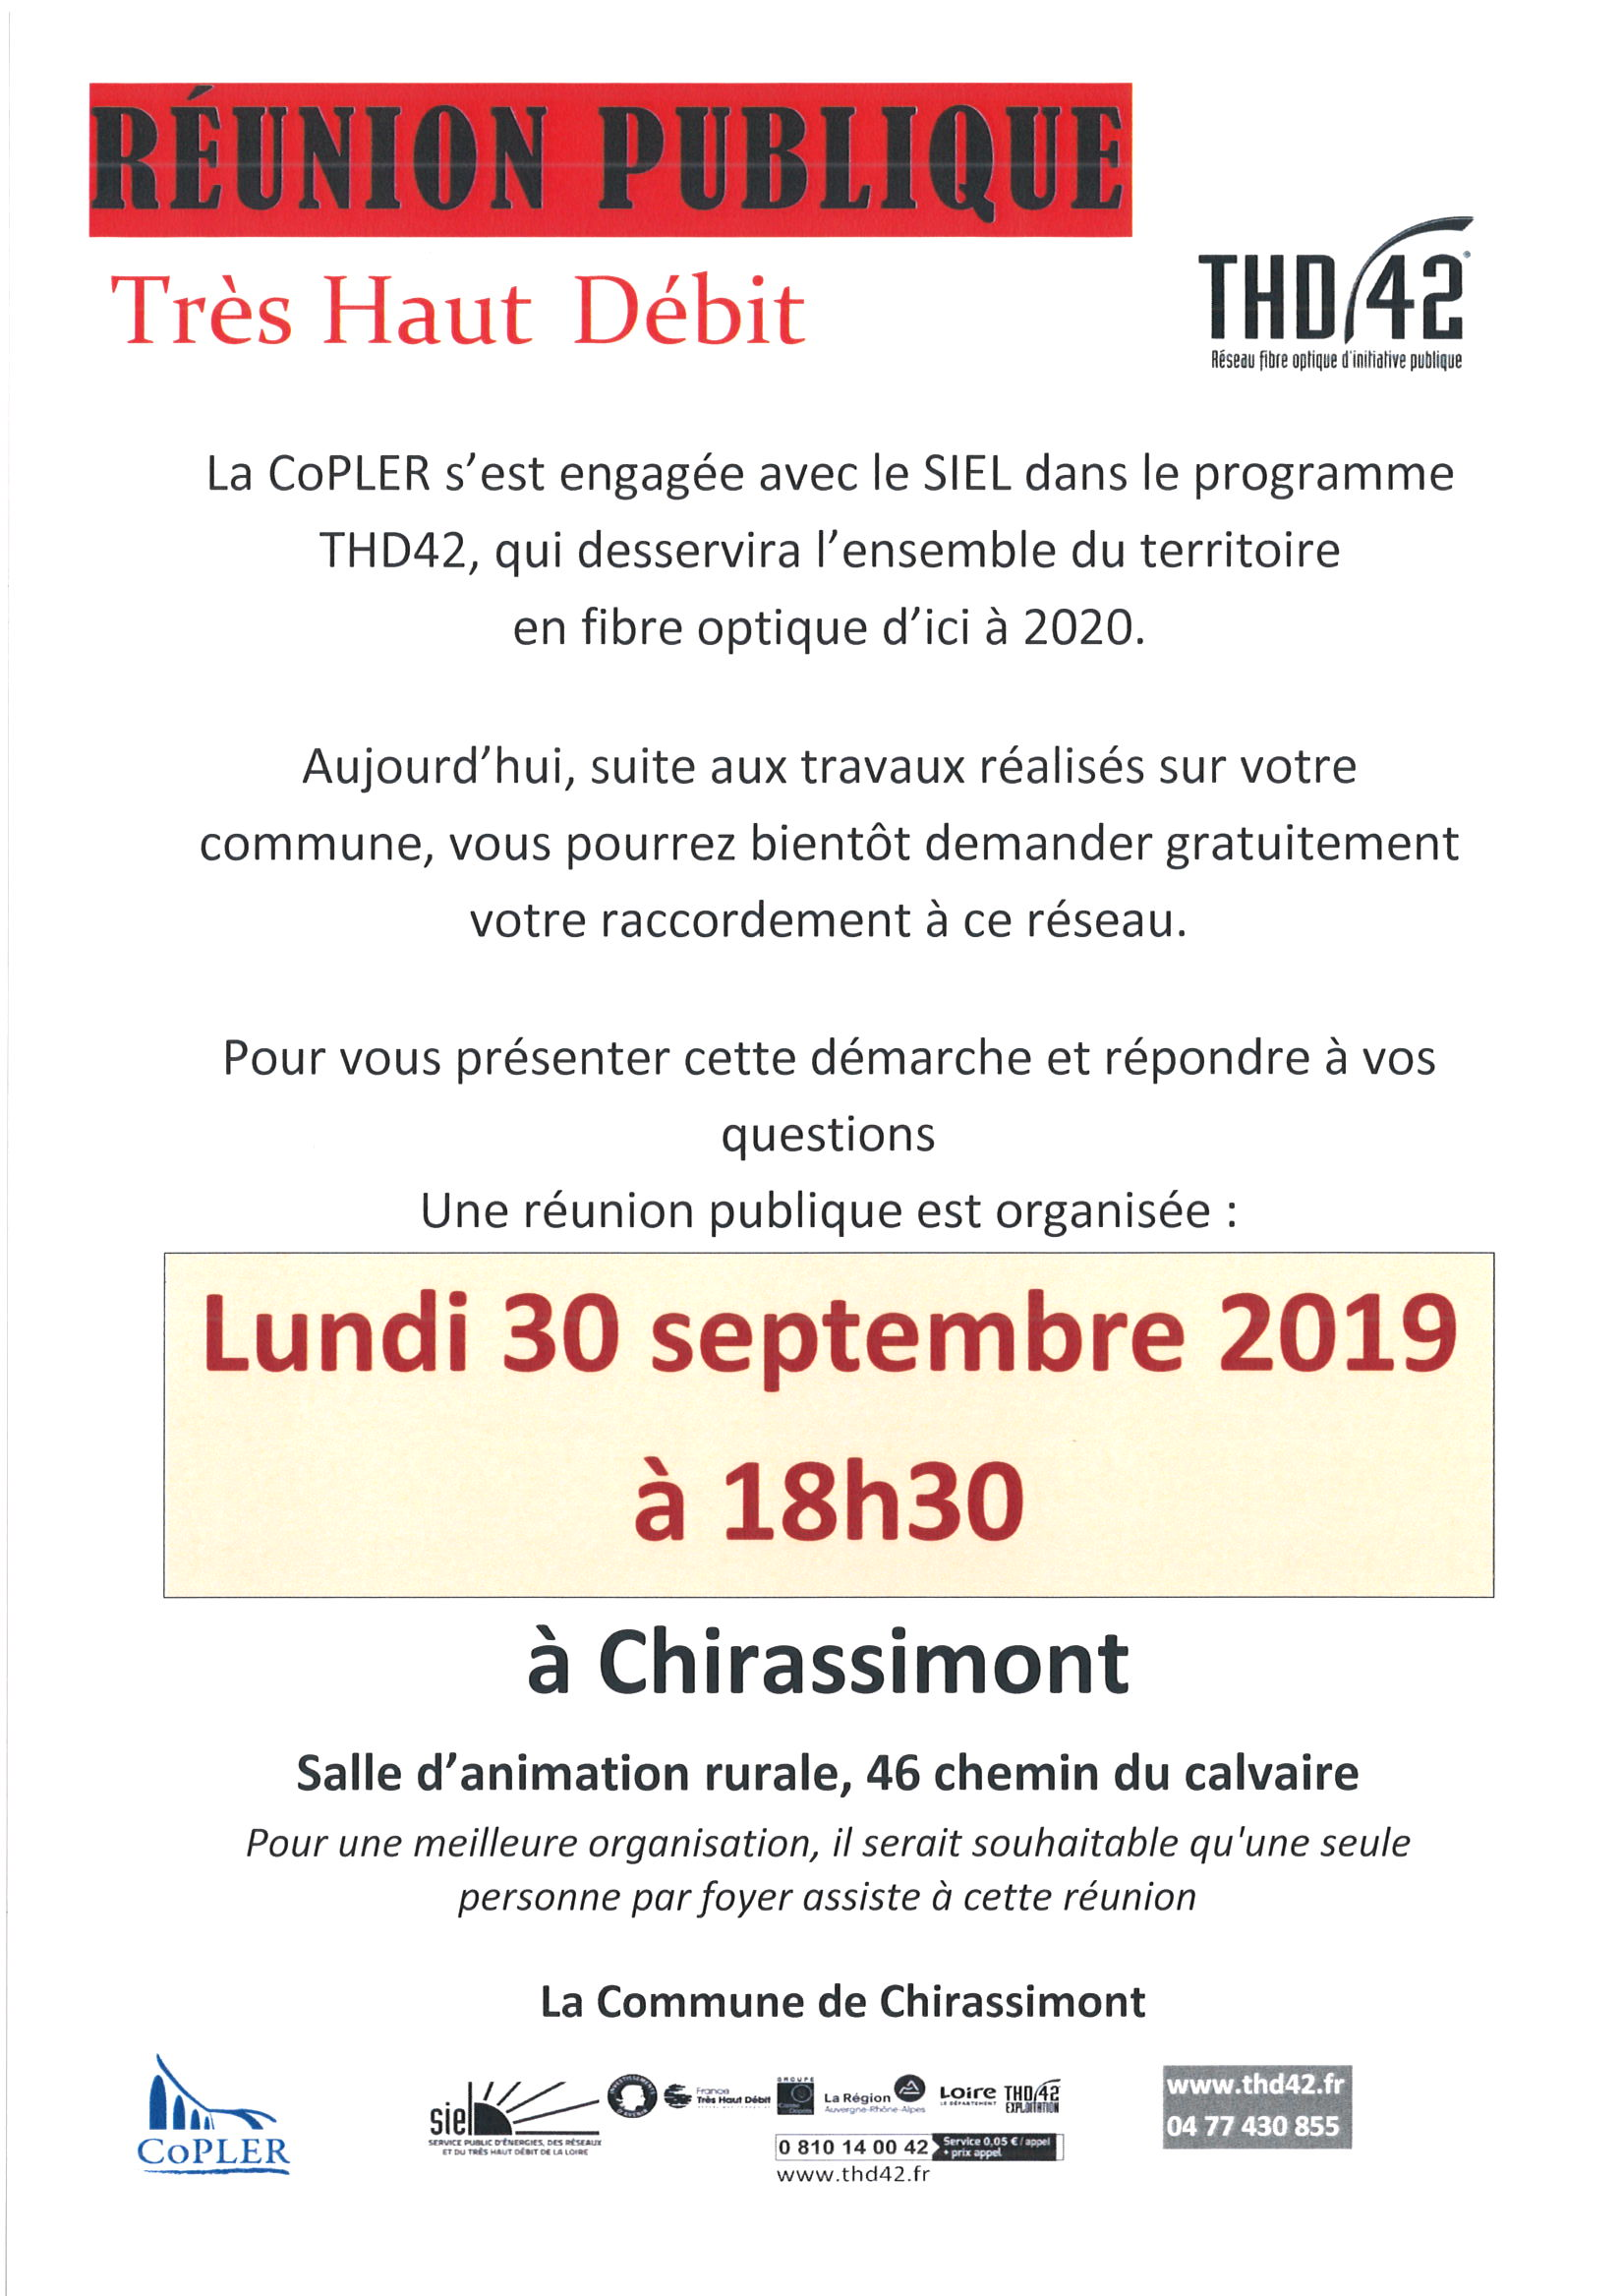 reunion publique thd42 20190712153456 00001